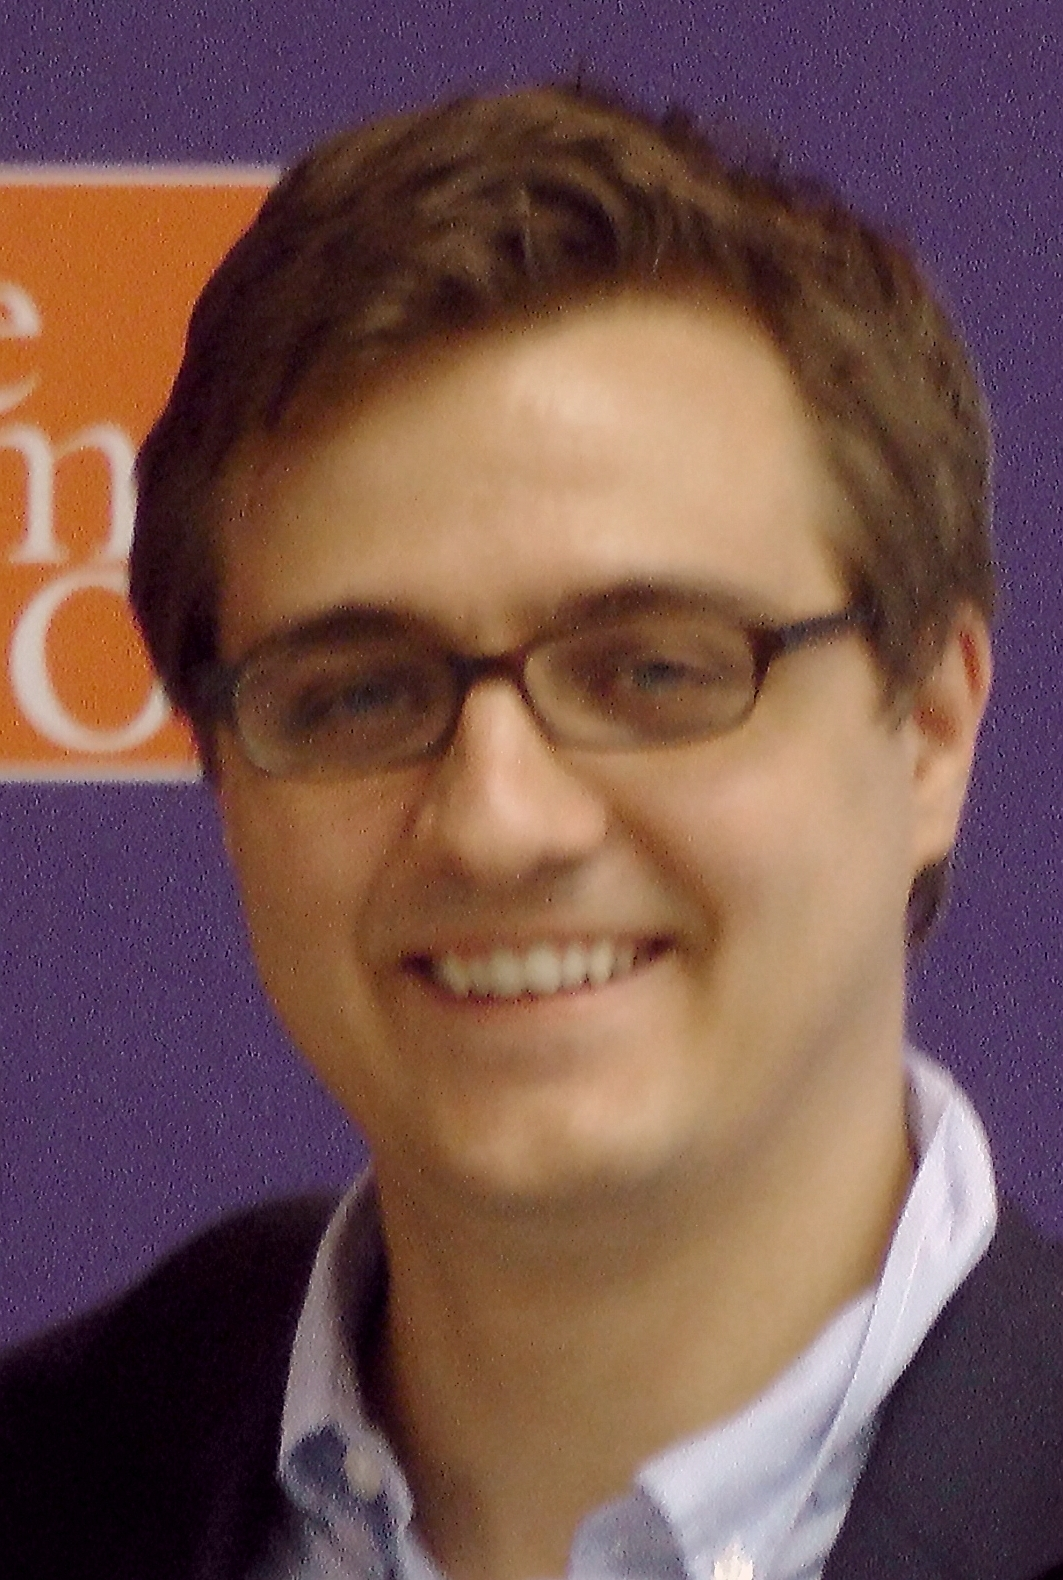 http://upload.wikimedia.org/wikipedia/commons/f/f5/Chris_Hayes_at_MSNBC_The_Common_Good_-_2012_07_18_-_01.jpg